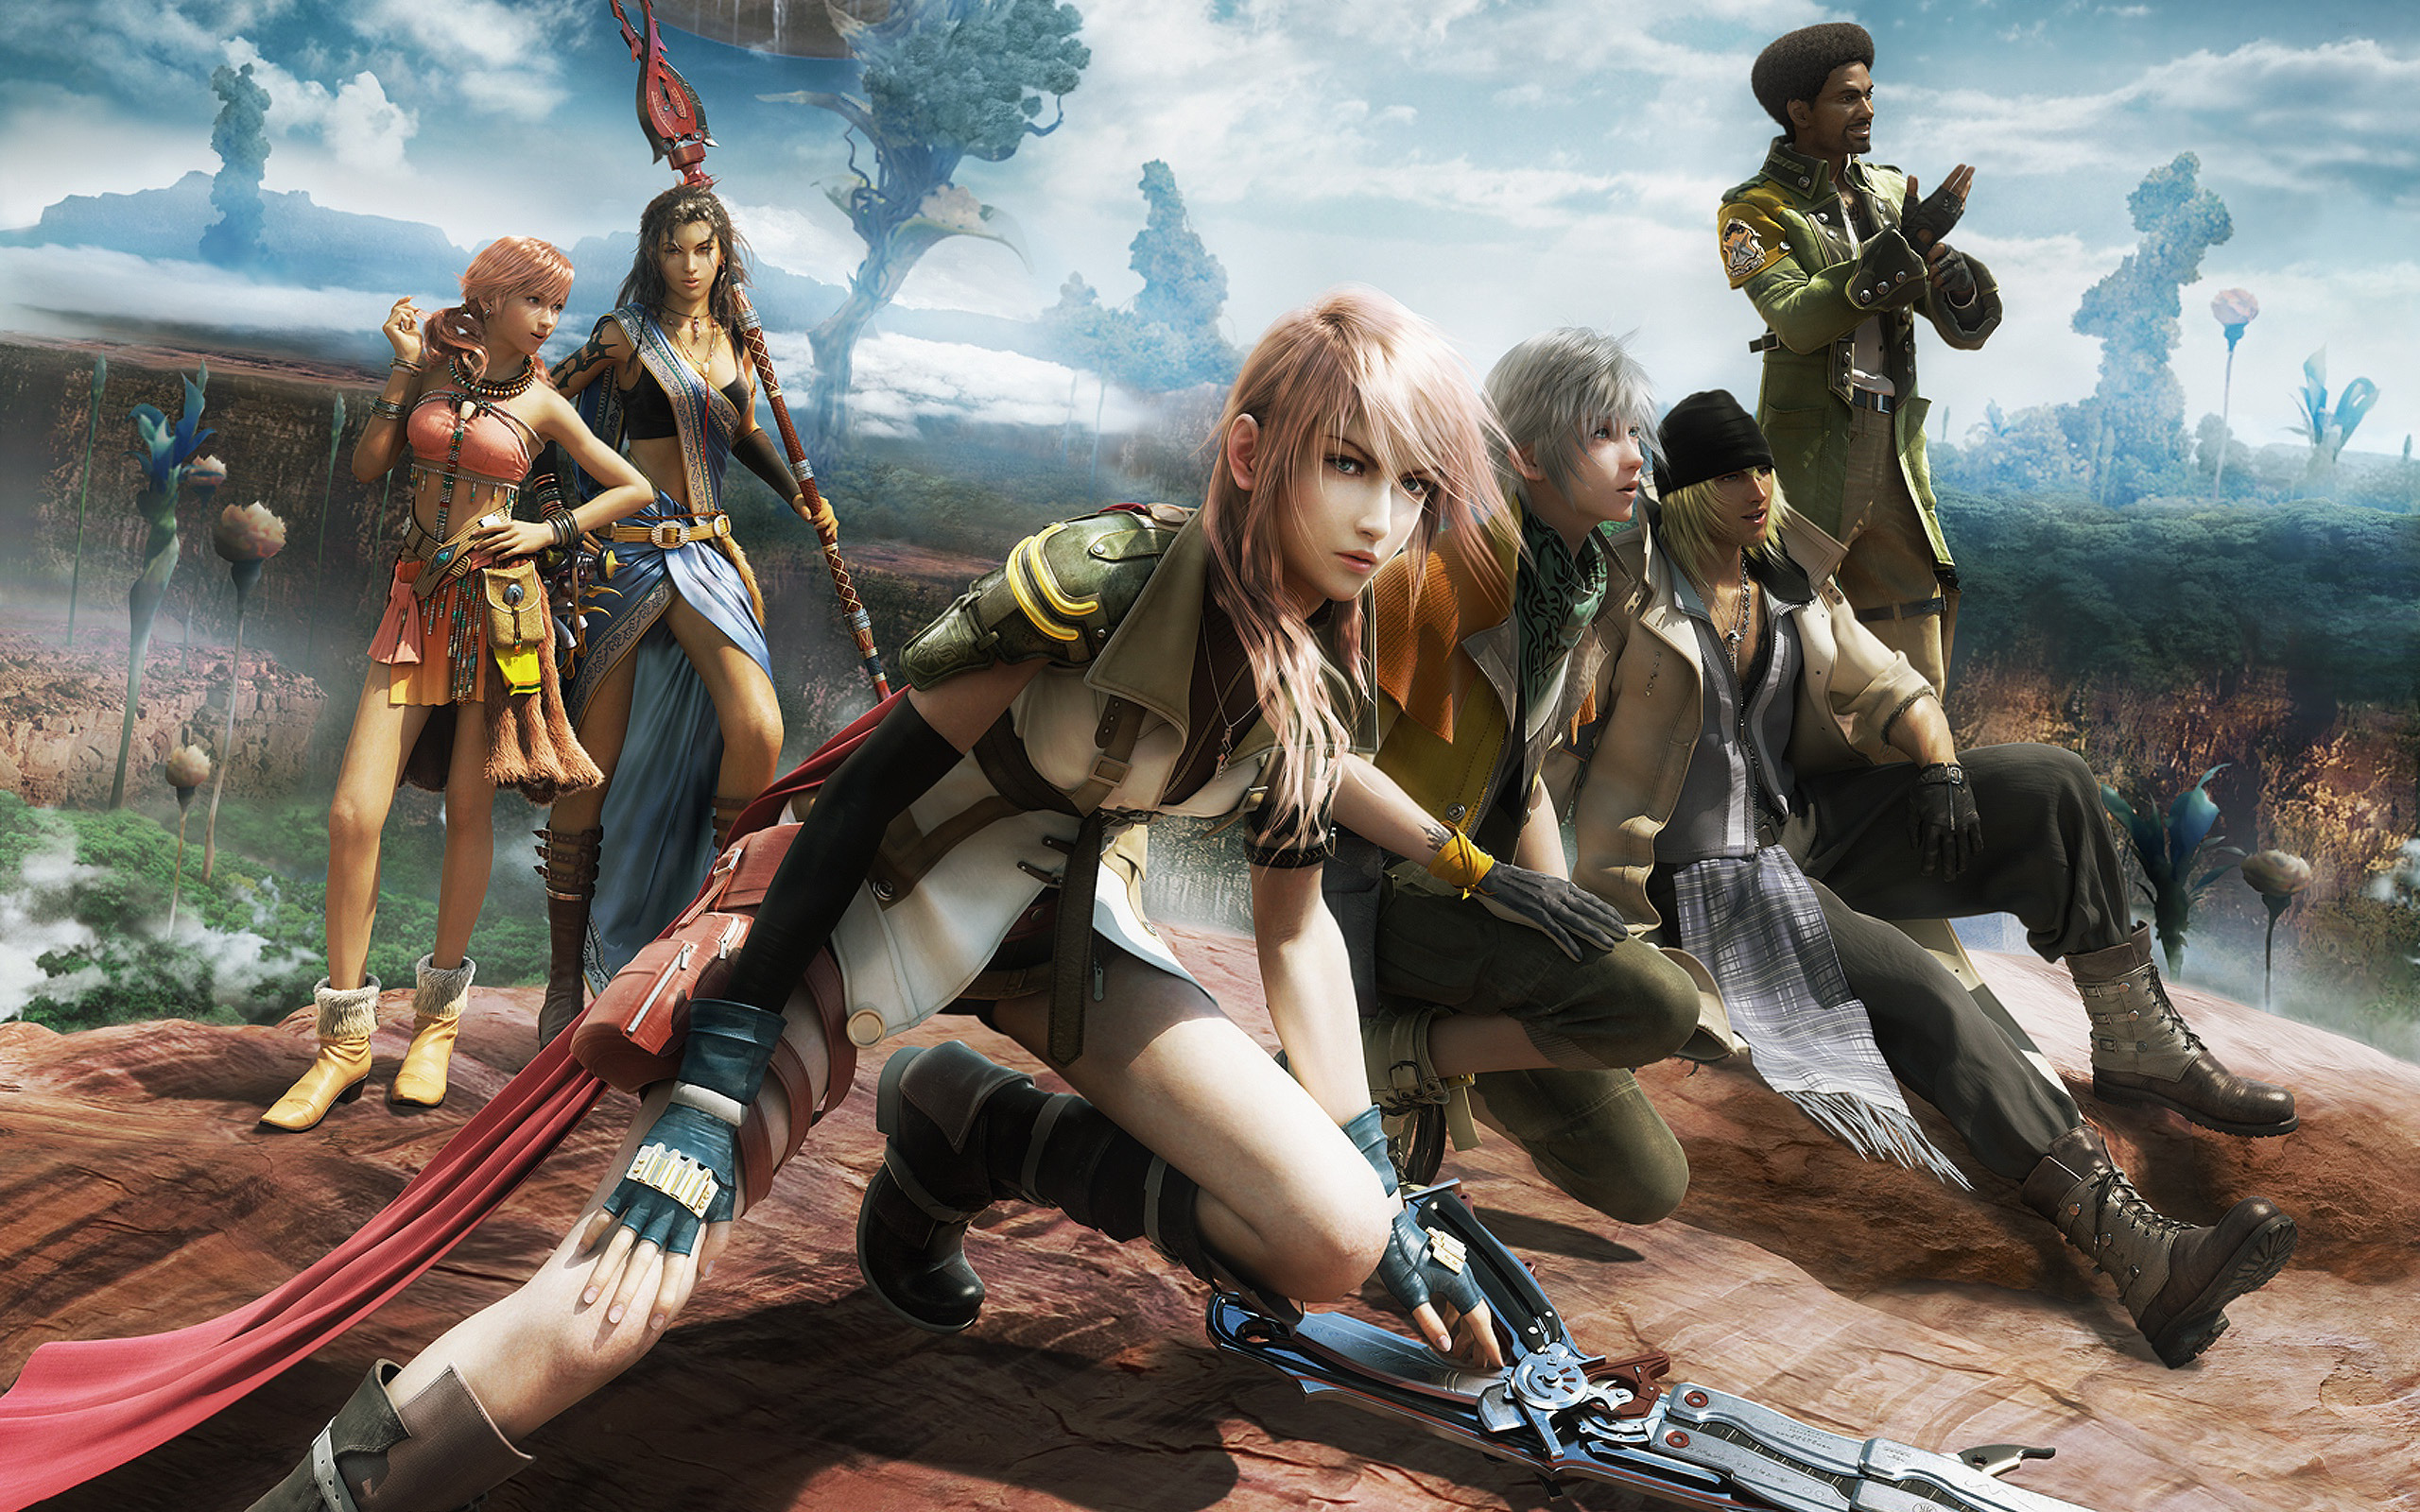 Free Download Review Final Fantasy Xiii 2 Share Indonesian Ideas